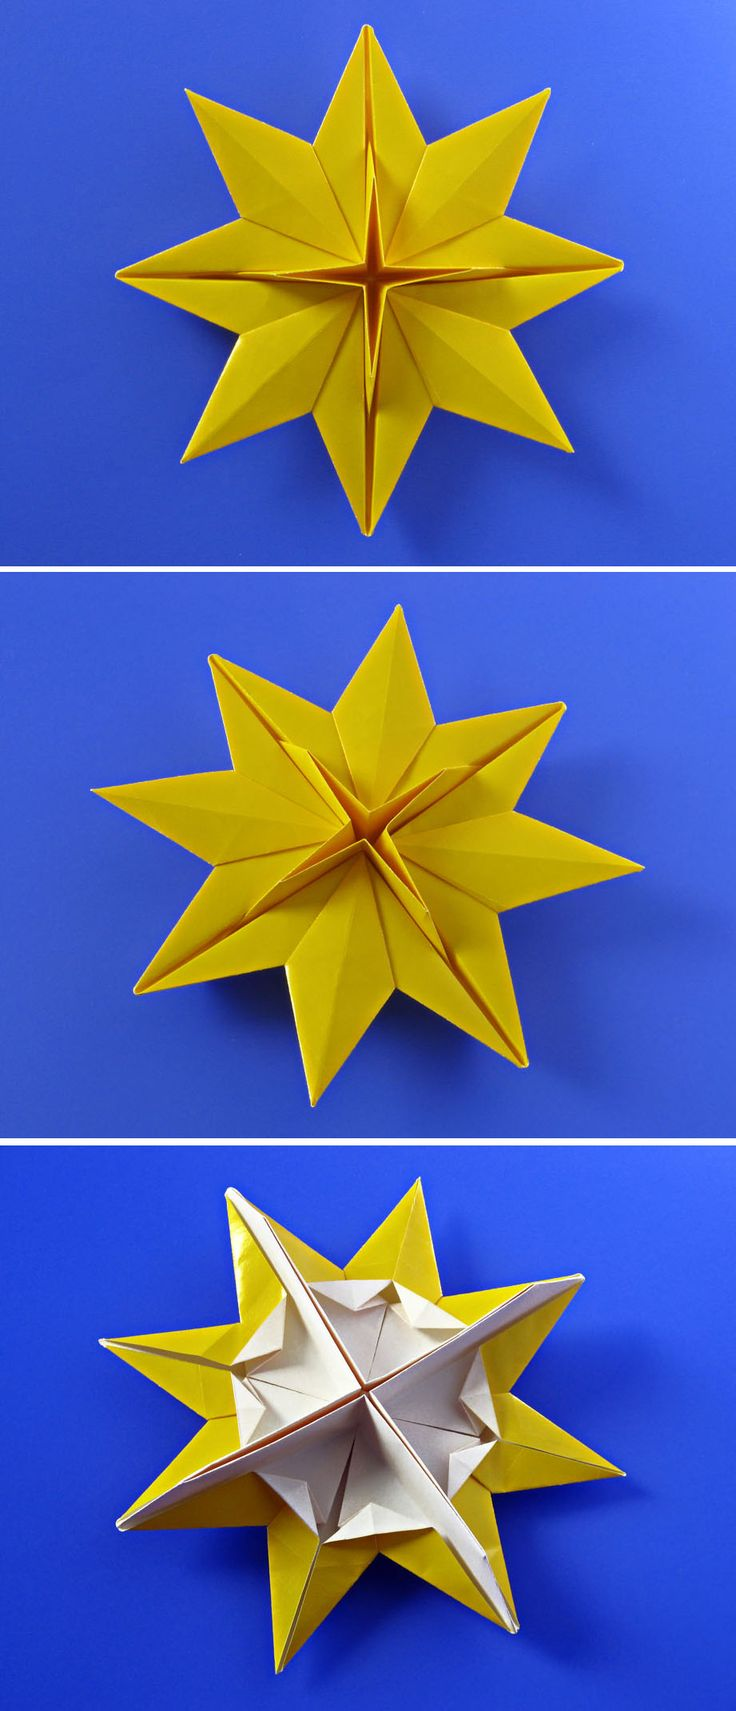 Christmas origami instructions hex star maria sinayskaya youtube - Origami Bistella From One Uncut Square Of Collage Paper 17 X 17 Cm